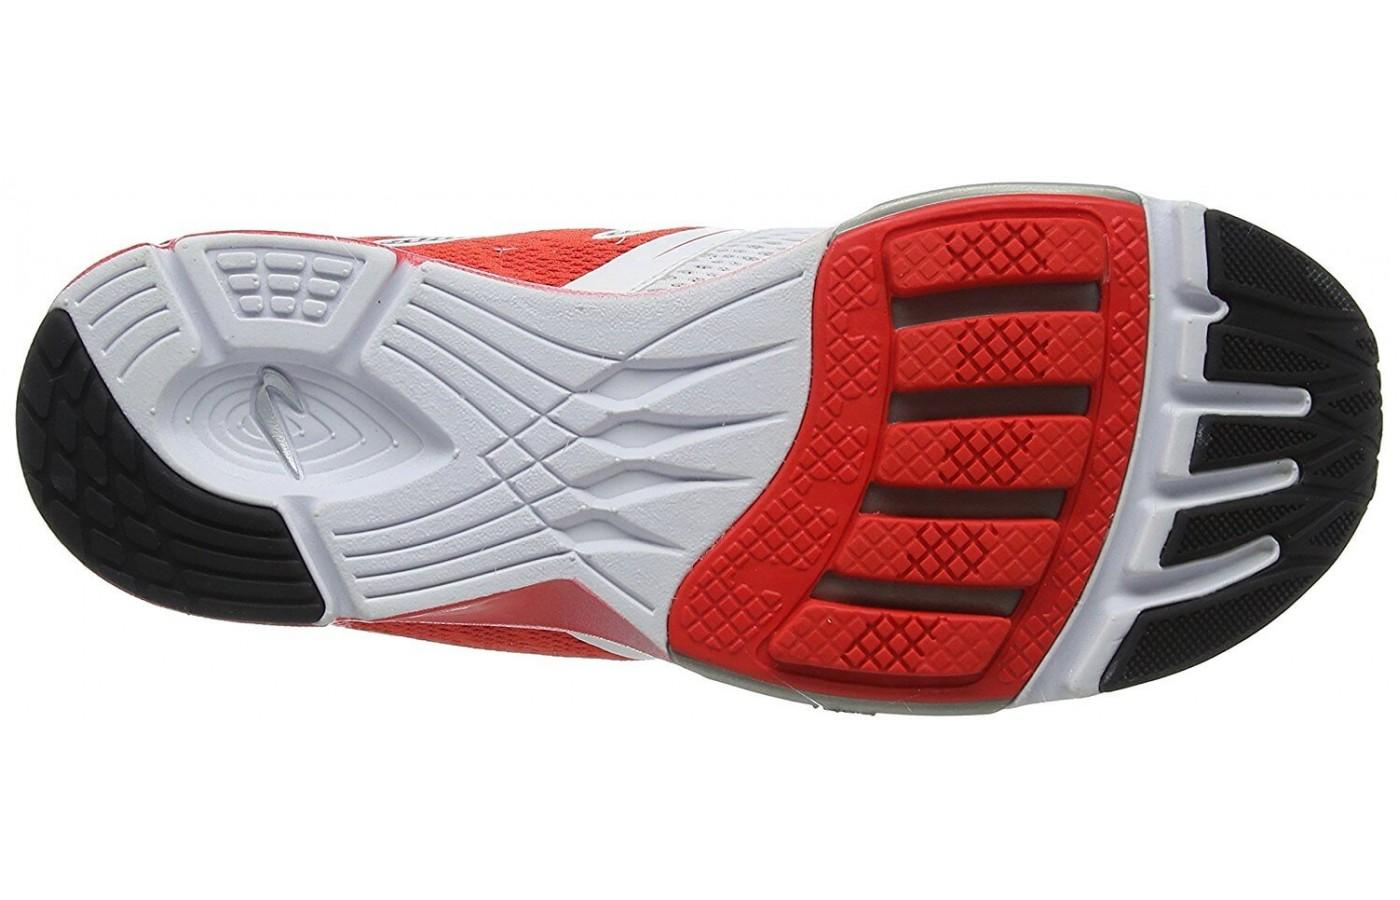 The Newton Distance 6 tread pattern matches the bones and tendons in the foot